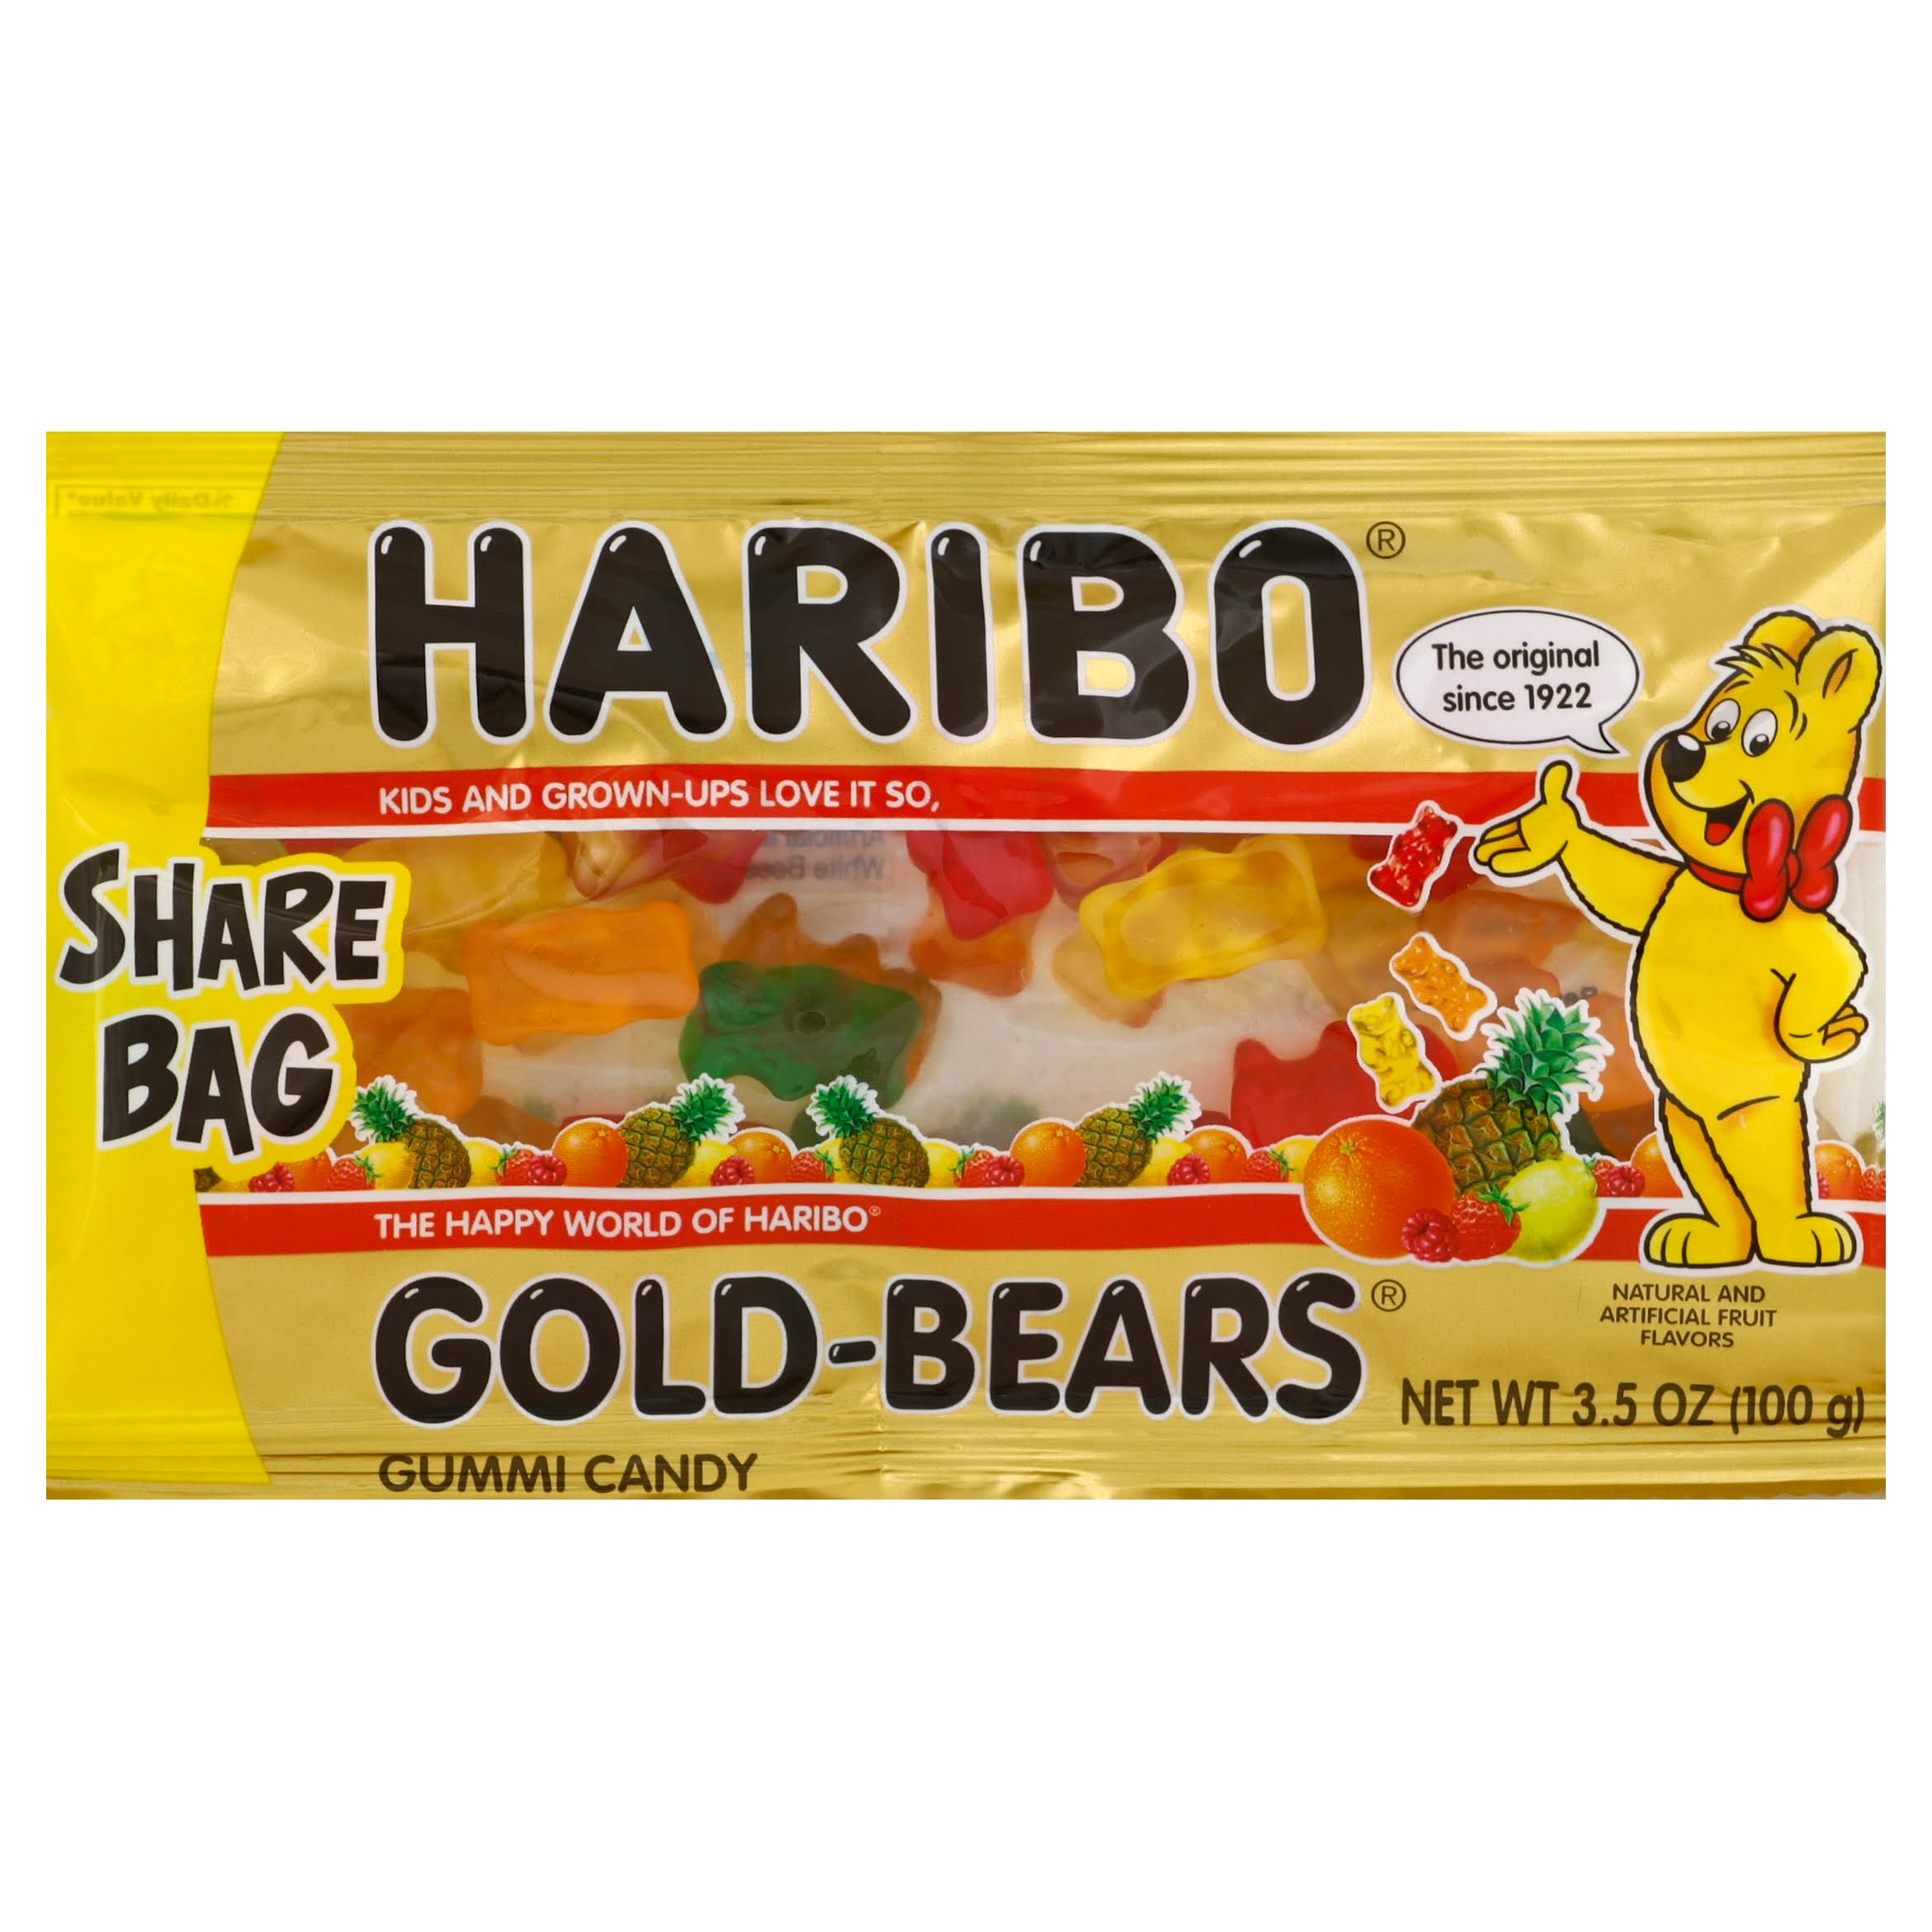 Haribo Gummi Candy, Gold- Bears, Share Bag - 3.5 oz